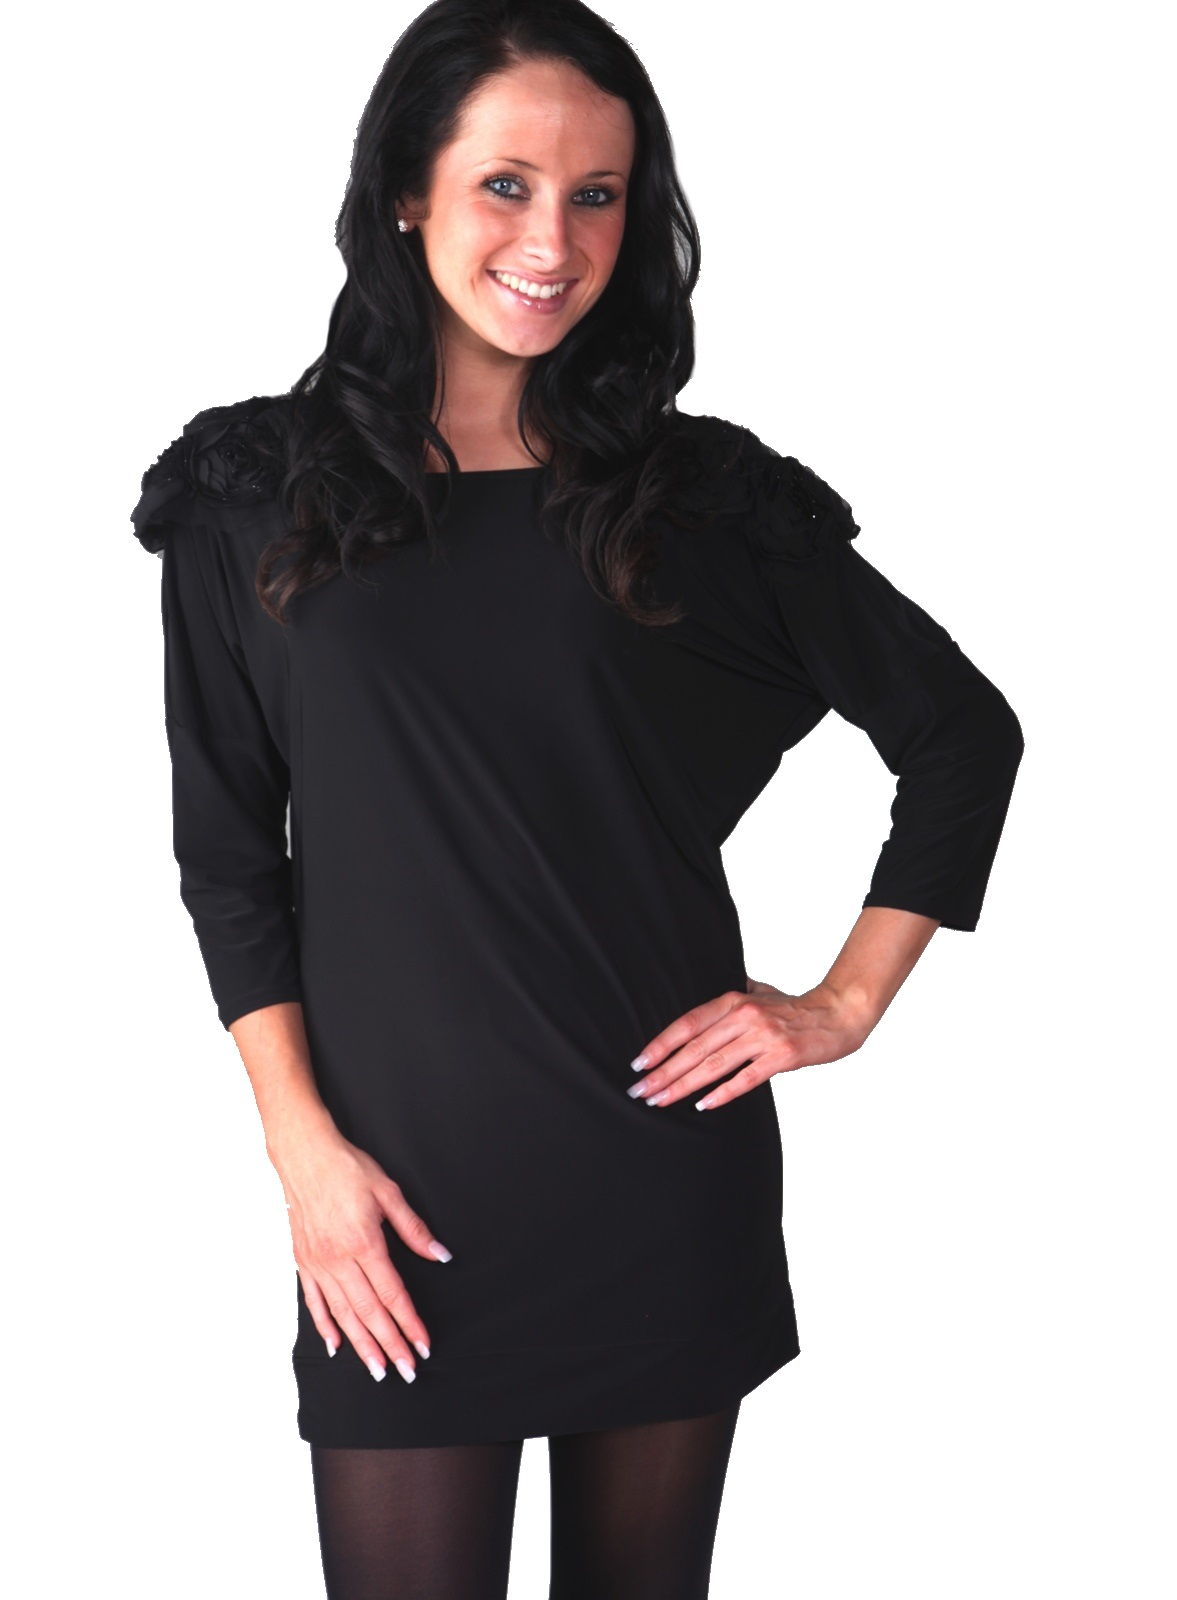 Shop Women's Tunic Tops, Tanks, and Blouses at Banana Republic Online You'll love assembling a great casual or semi-casual outfit with tunic tops from Banana Republic. Tunics are great go-to tops for a variety of settings, and they look wonderful on most body types.